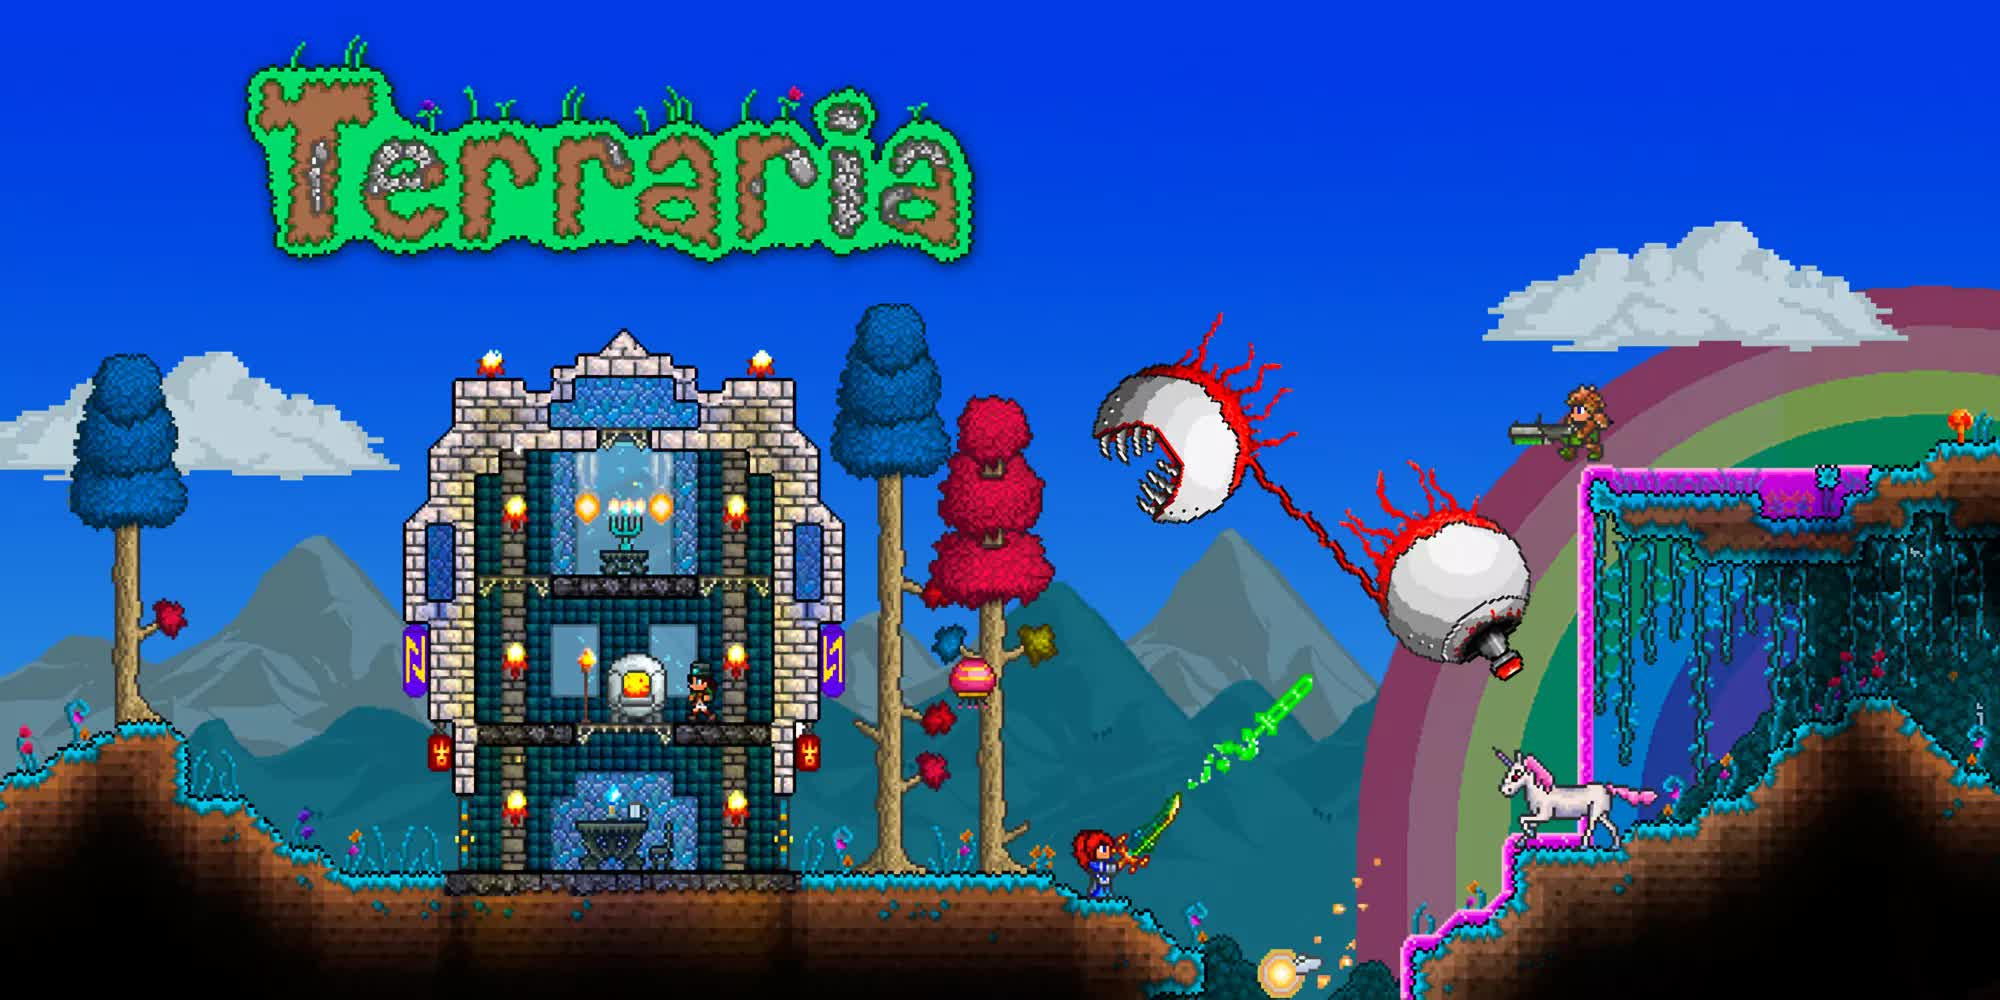 Stadia version of Terraria is back on after developer reconciles with Google